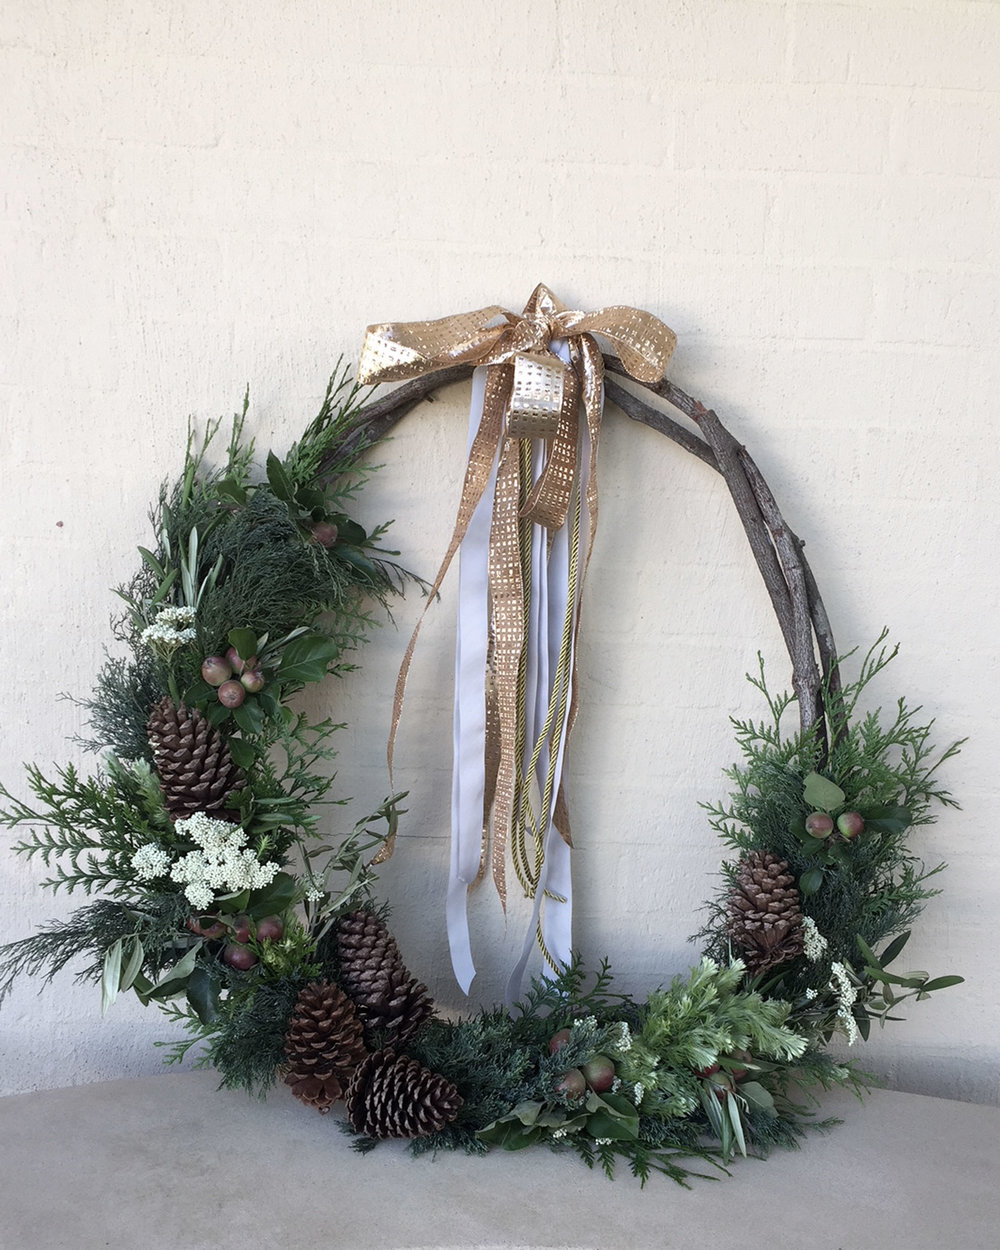 Large Classic Wreath featuring natural green foliage, rice flower, miniature apples and pinecones from $140